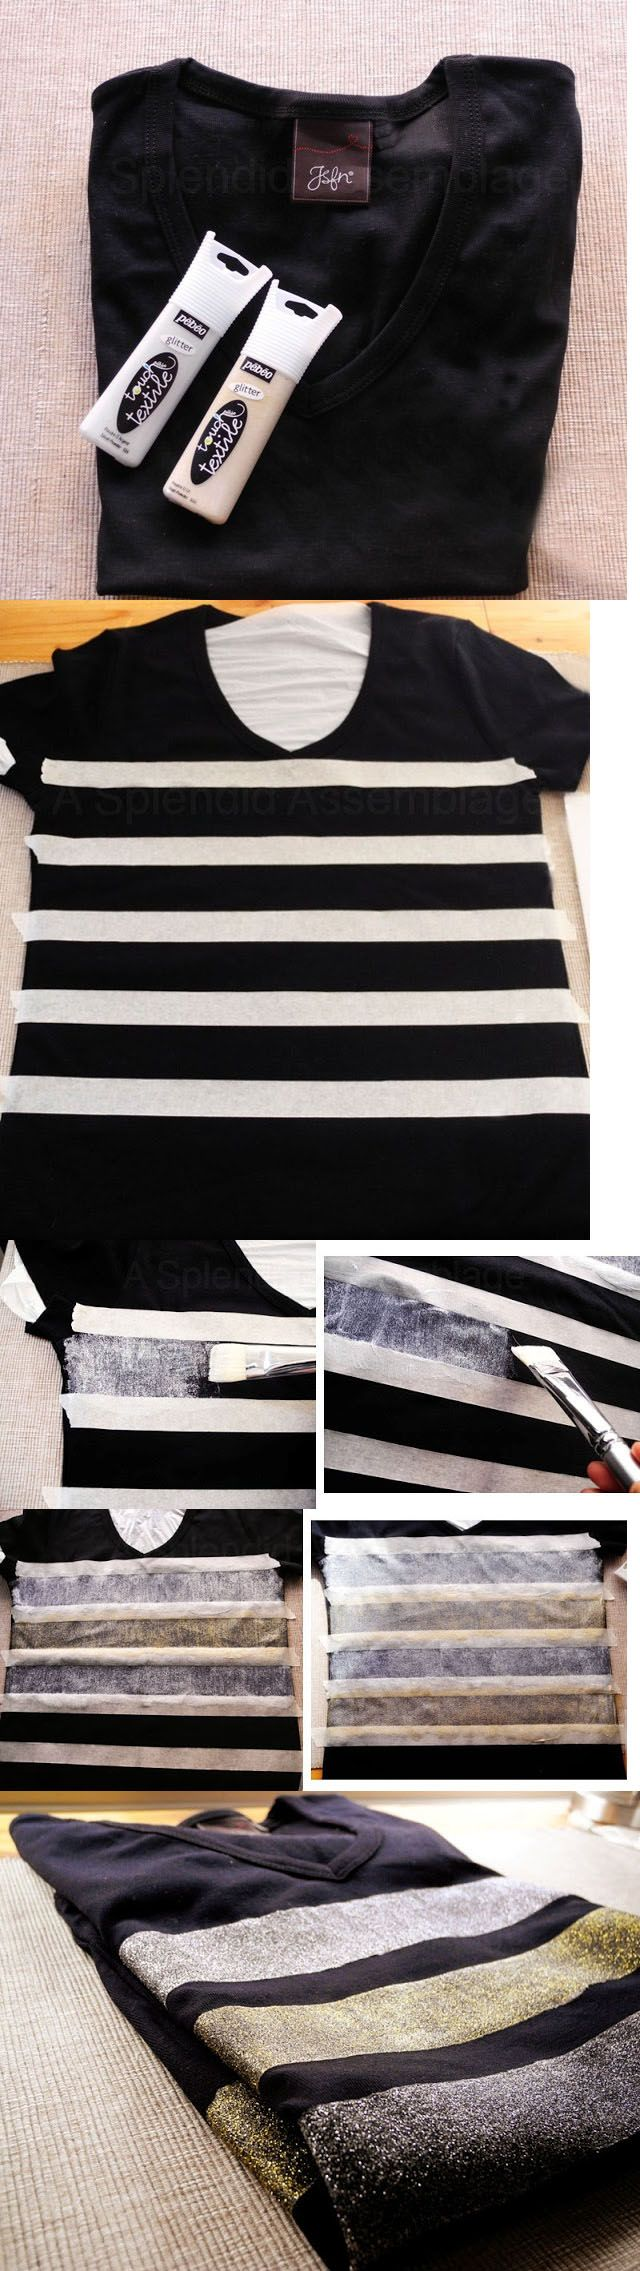 DIY Clothes | Fashionista Pieces - I would do one vertical stripe down the middle